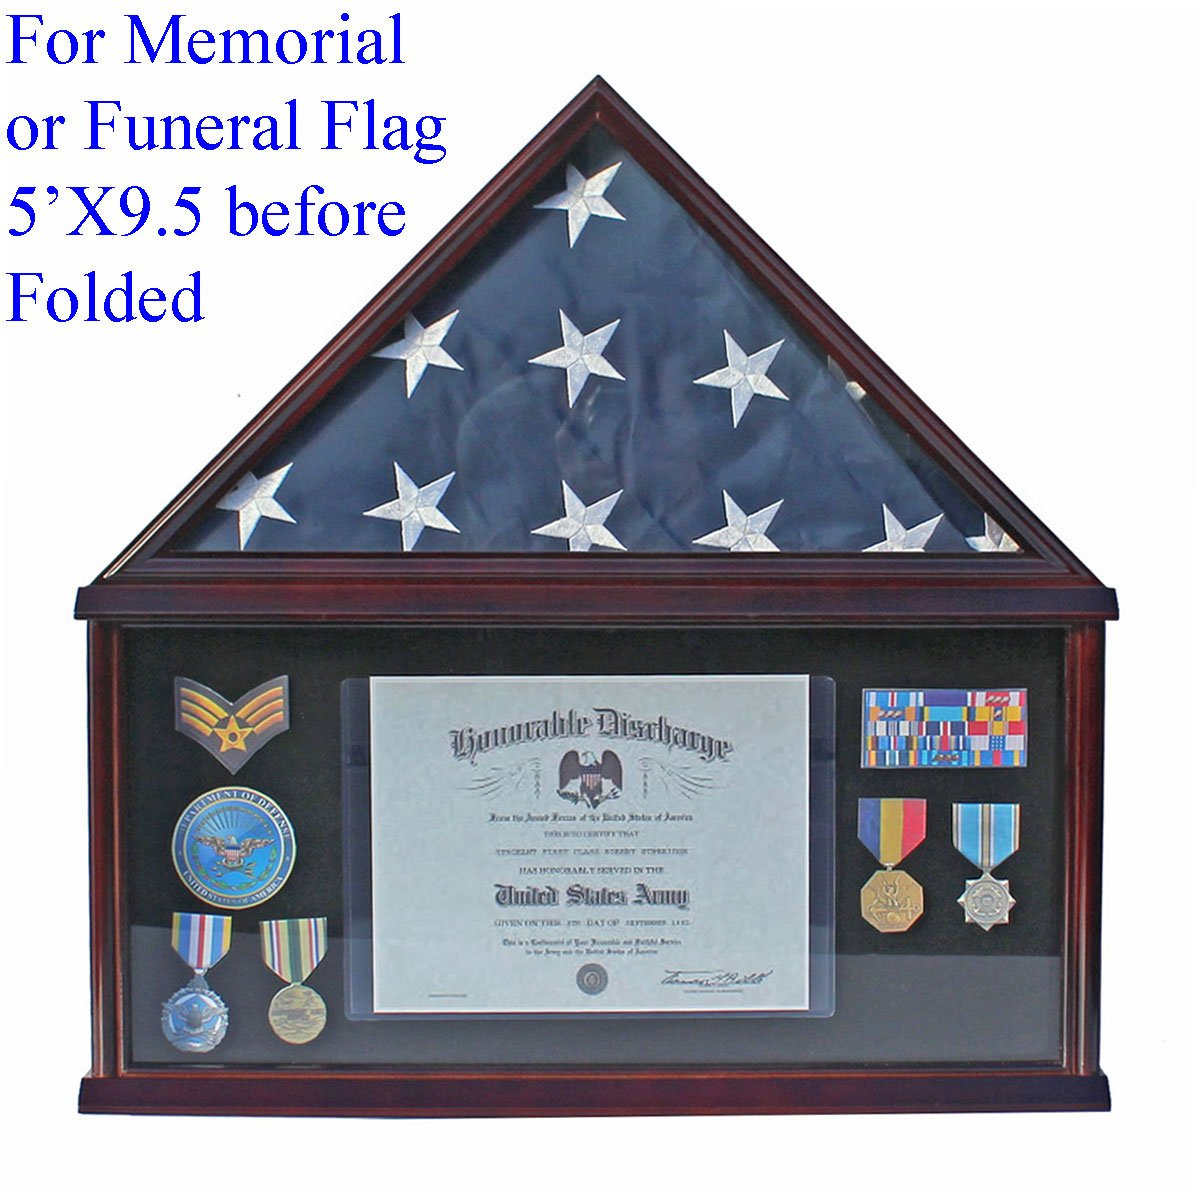 Military Memorial Shadow Box, Burial/Funeral Flag Display Case for 5' X 9.5' Flag (Mahogany) FC07-MA by NULL